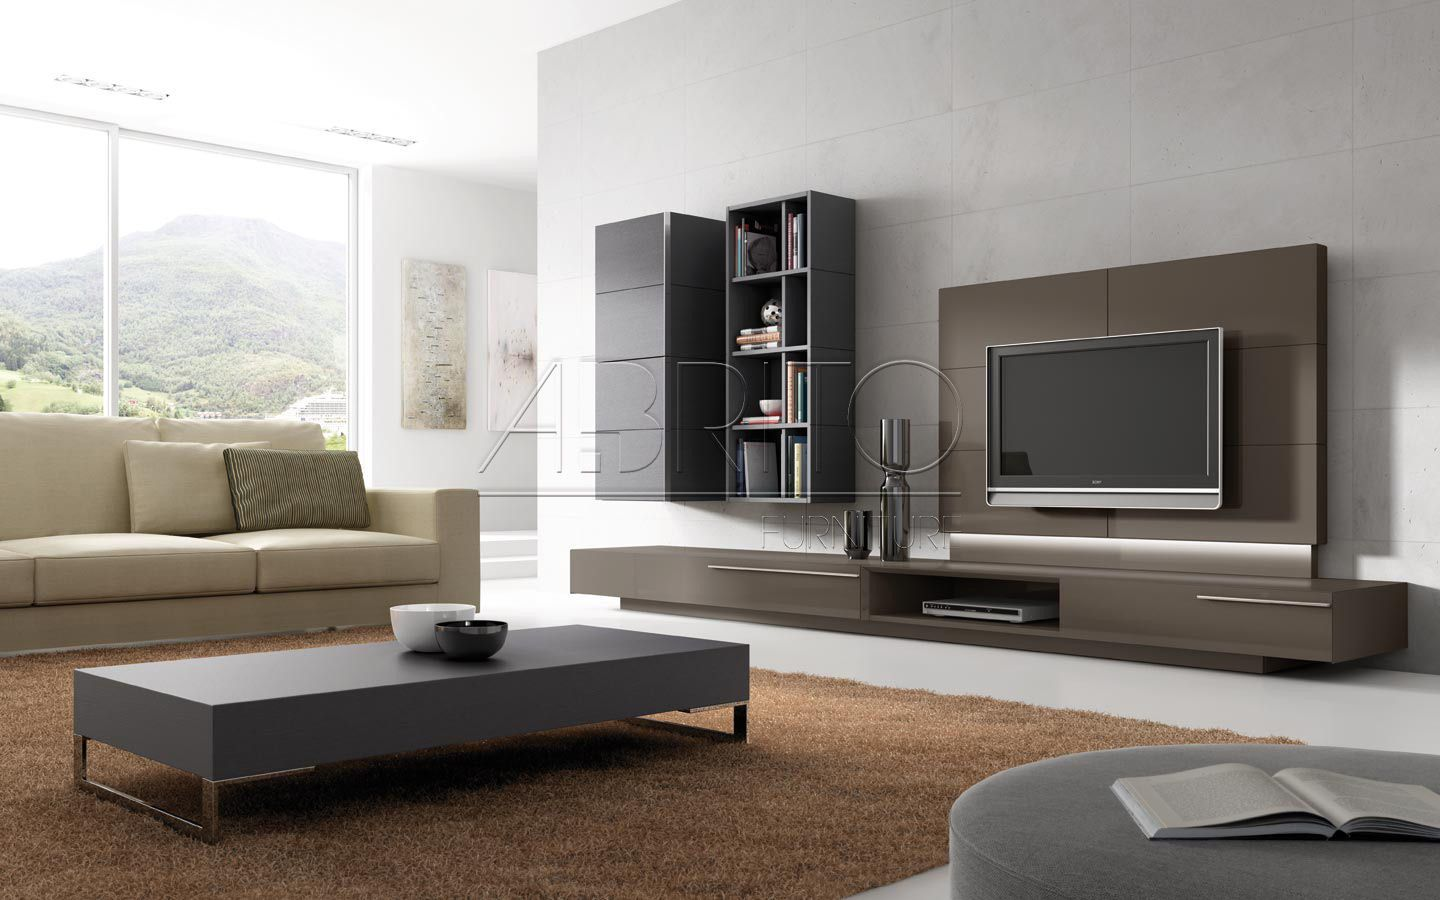 Tv On The Wall Ideas Browse Our Selection Of 15 Modern Tv Wall Units For